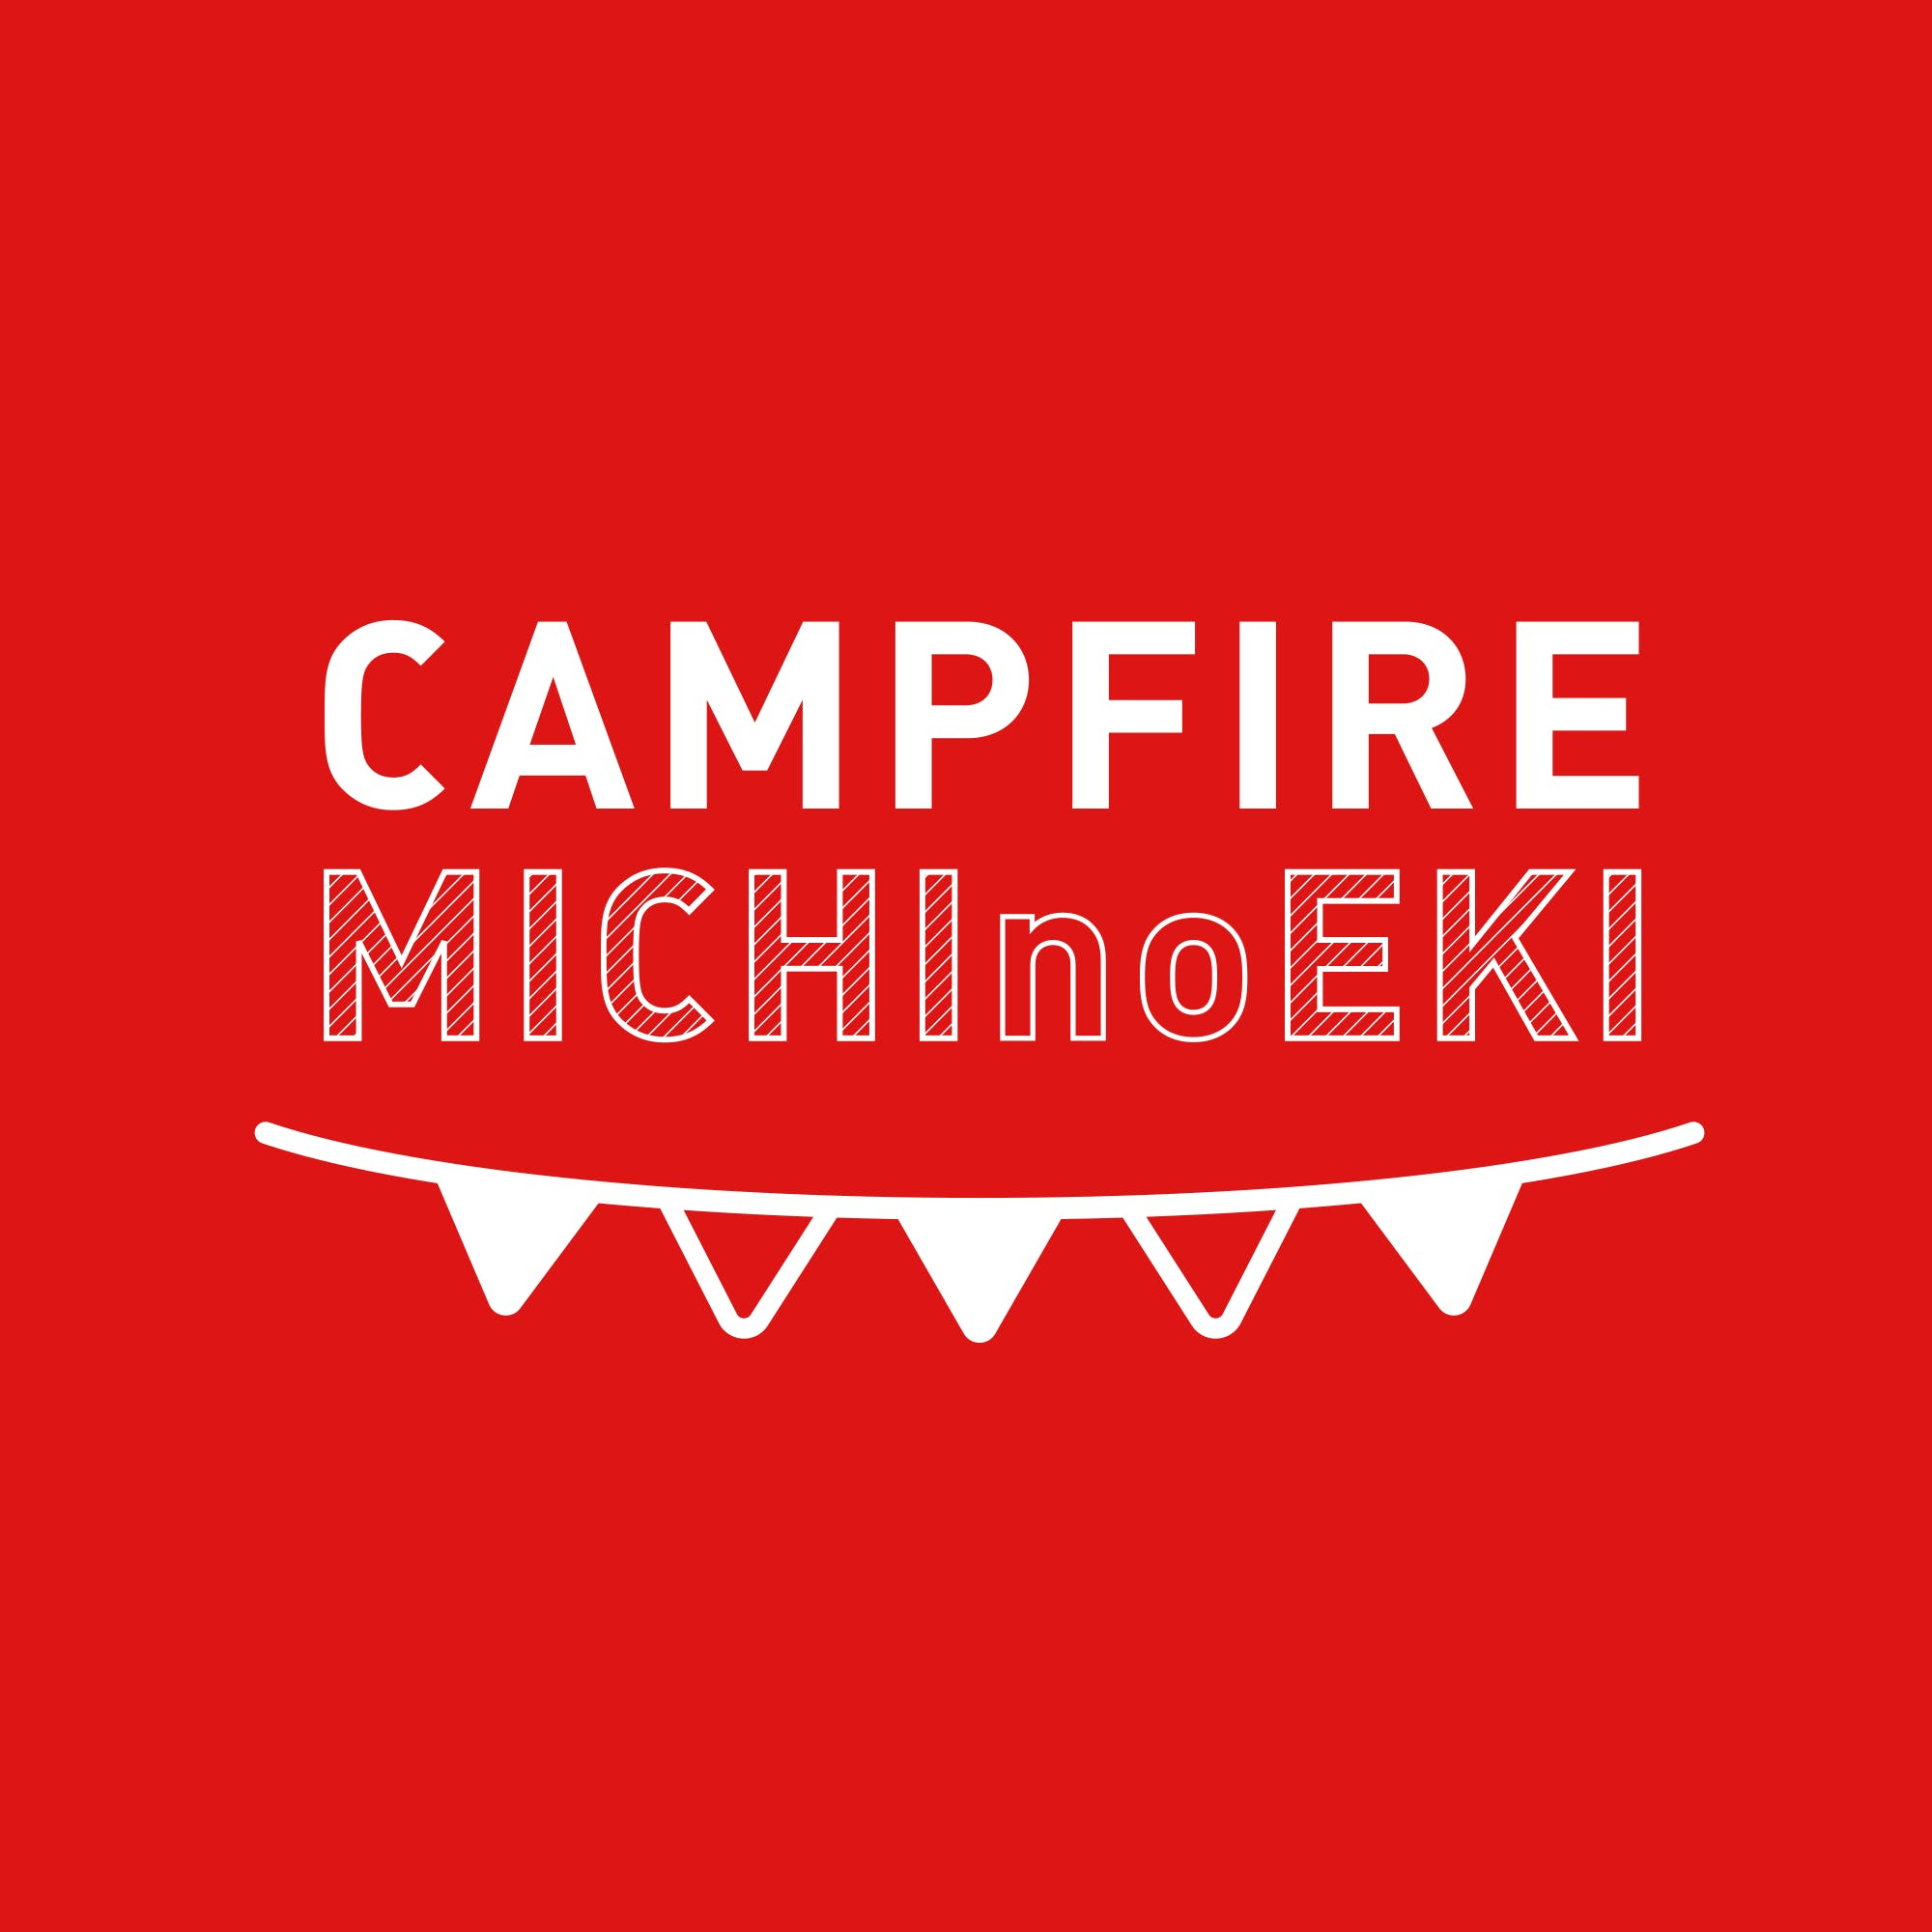 CAMPFIRE MICHI no EKI